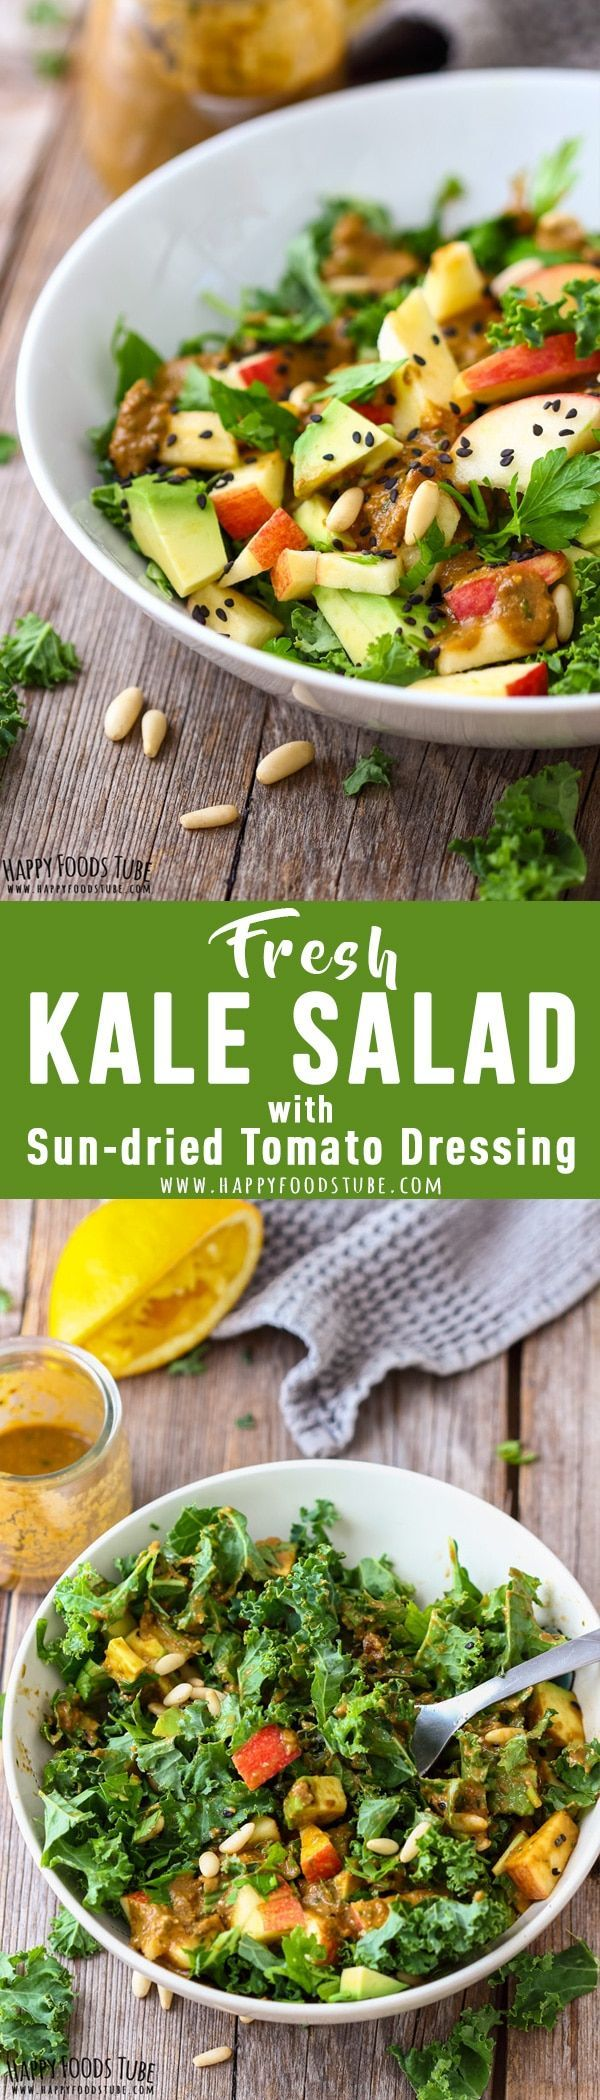 Fresh kale salad with sun-dried tomato dressing is healthy and delicious at the same time. Packed with nutrients this salad is a must try this New Year! #kale #salad #dressing #recipes #raw #detox #healthy #sundried #tomato #newyear via @happyfoodstube